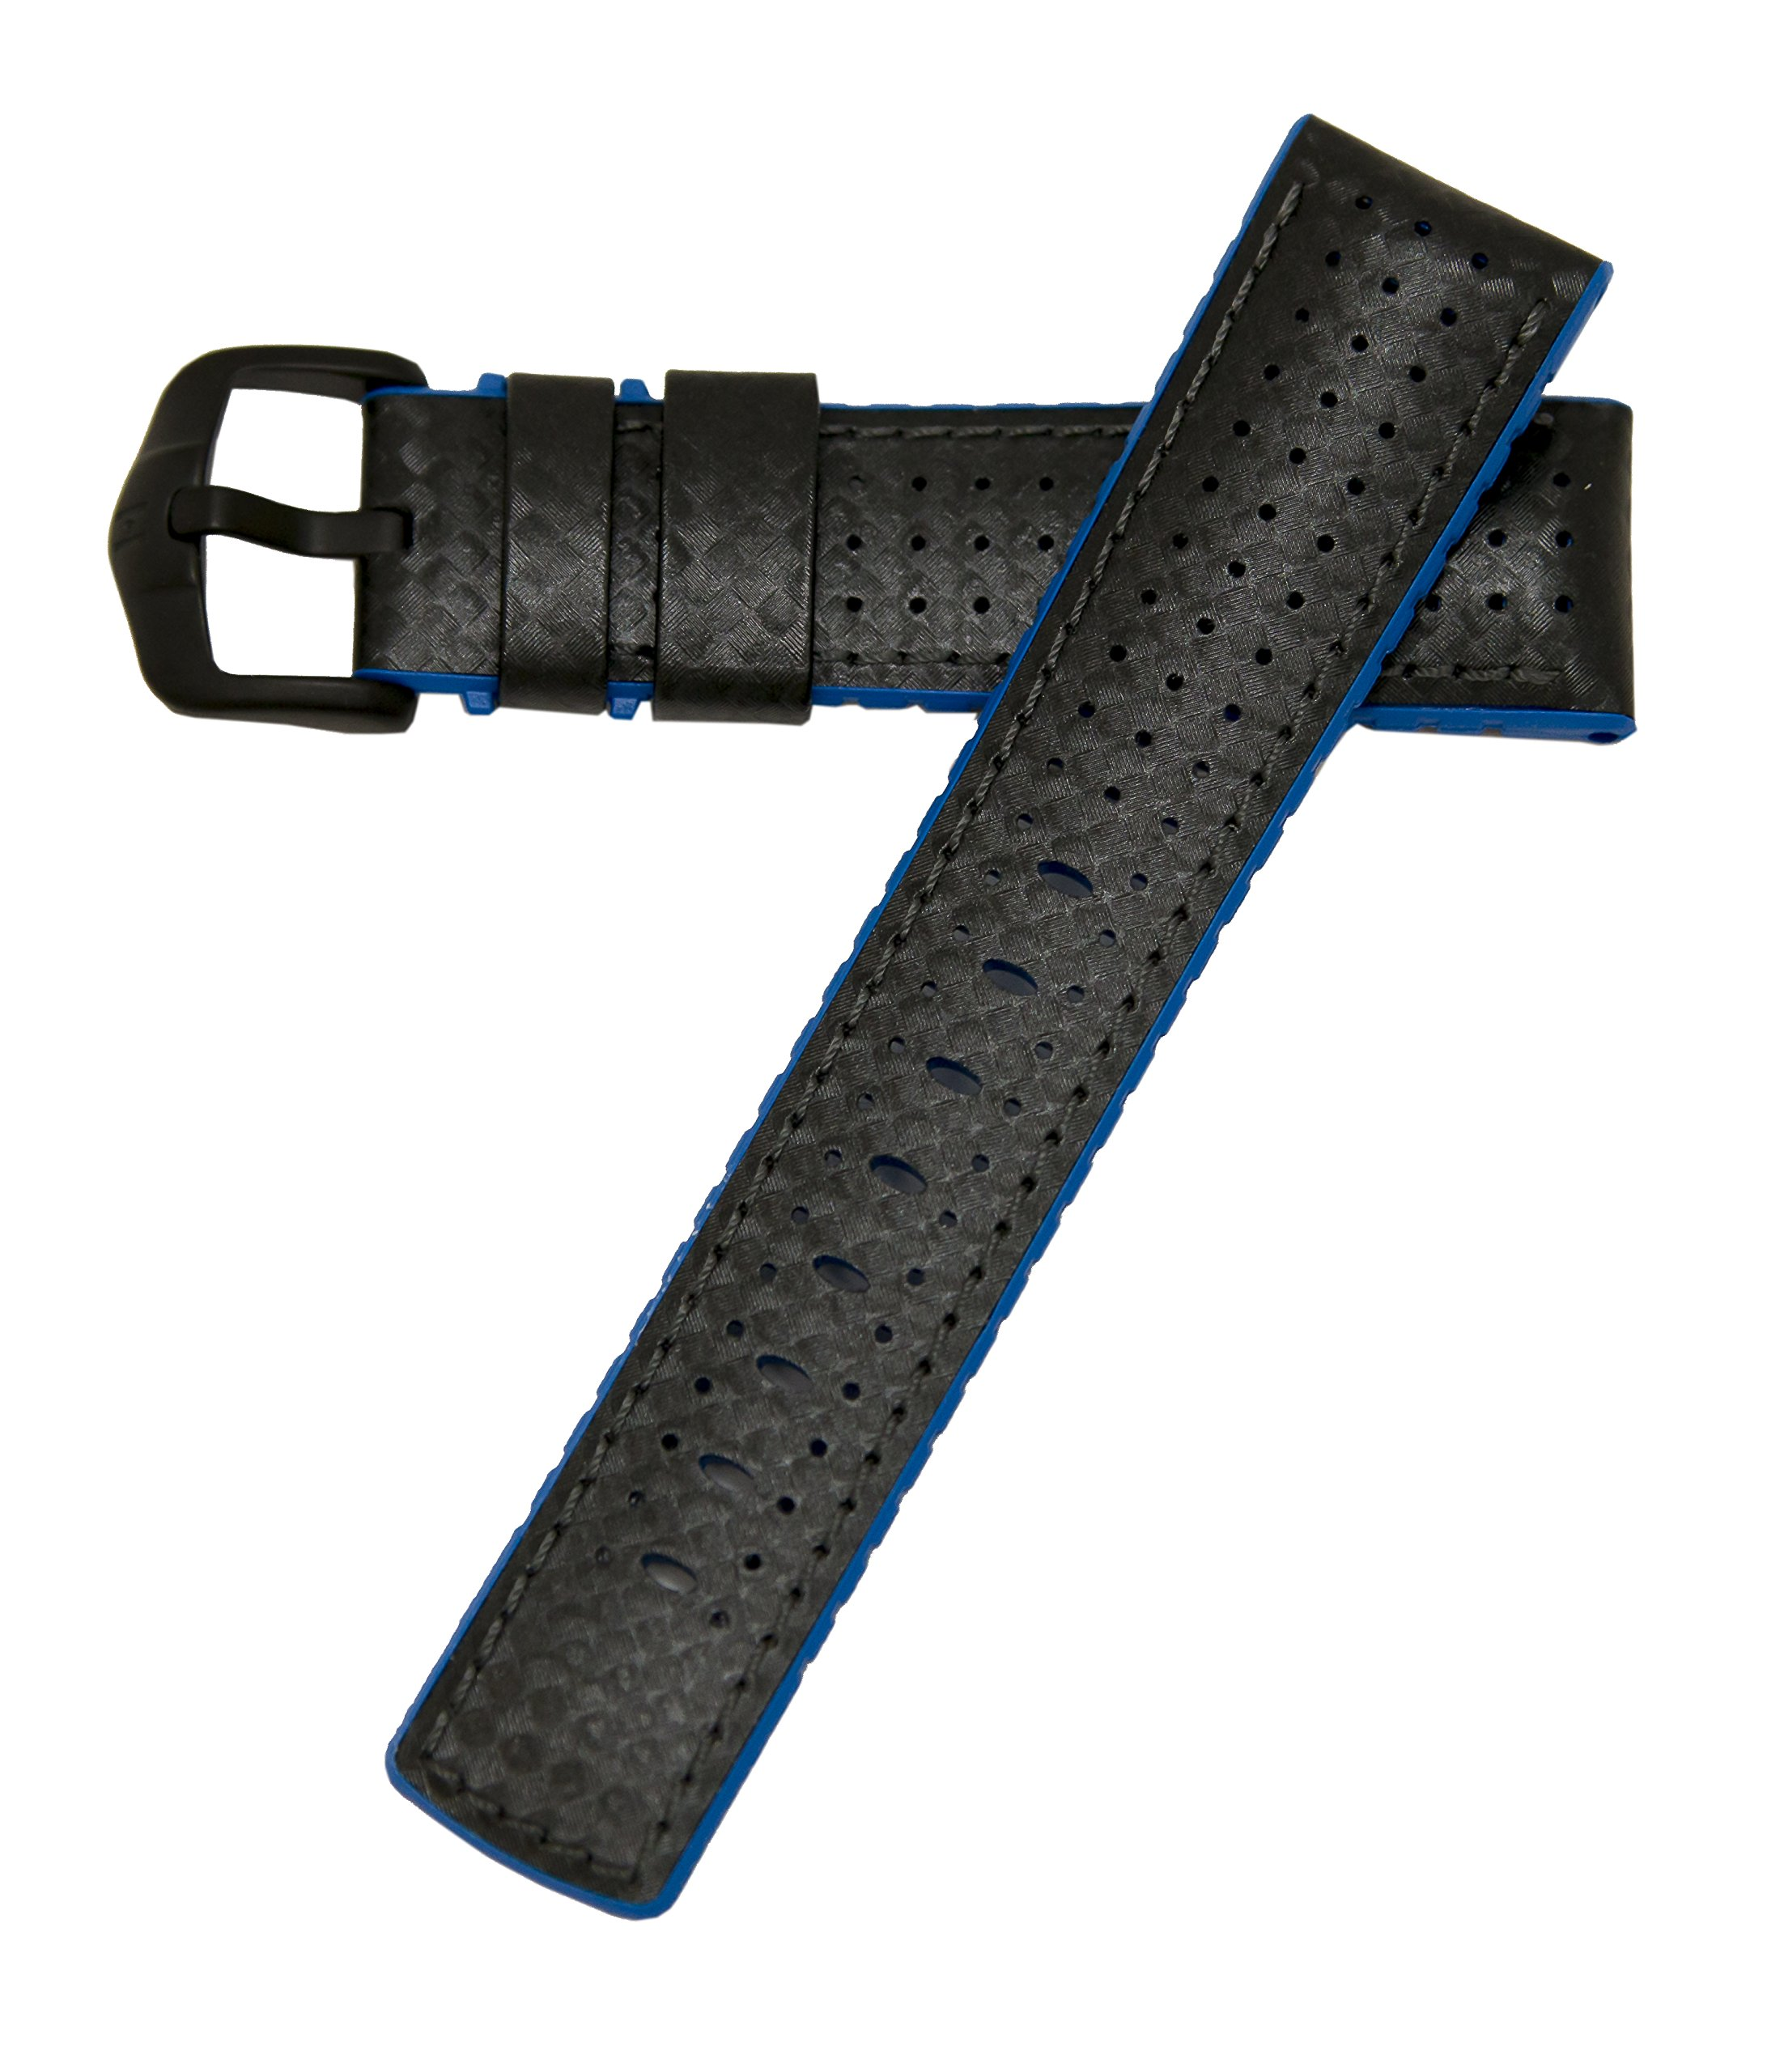 Hirsch Performance ARYTON Carbon Fiber Leather Sport Watch Strap Rubber Lined Black w/Blue Lining 20mm